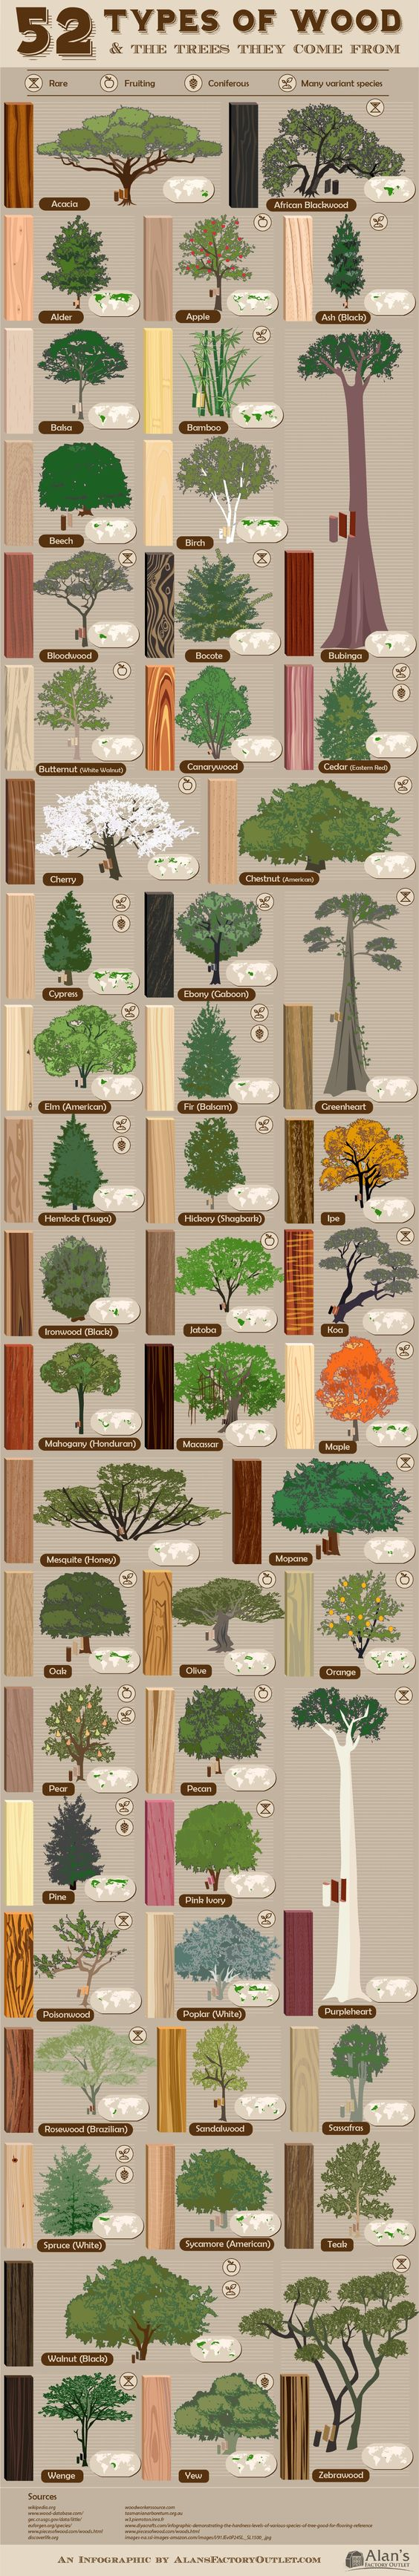 52-types-of-wood-trees-they-come-from.jpg: